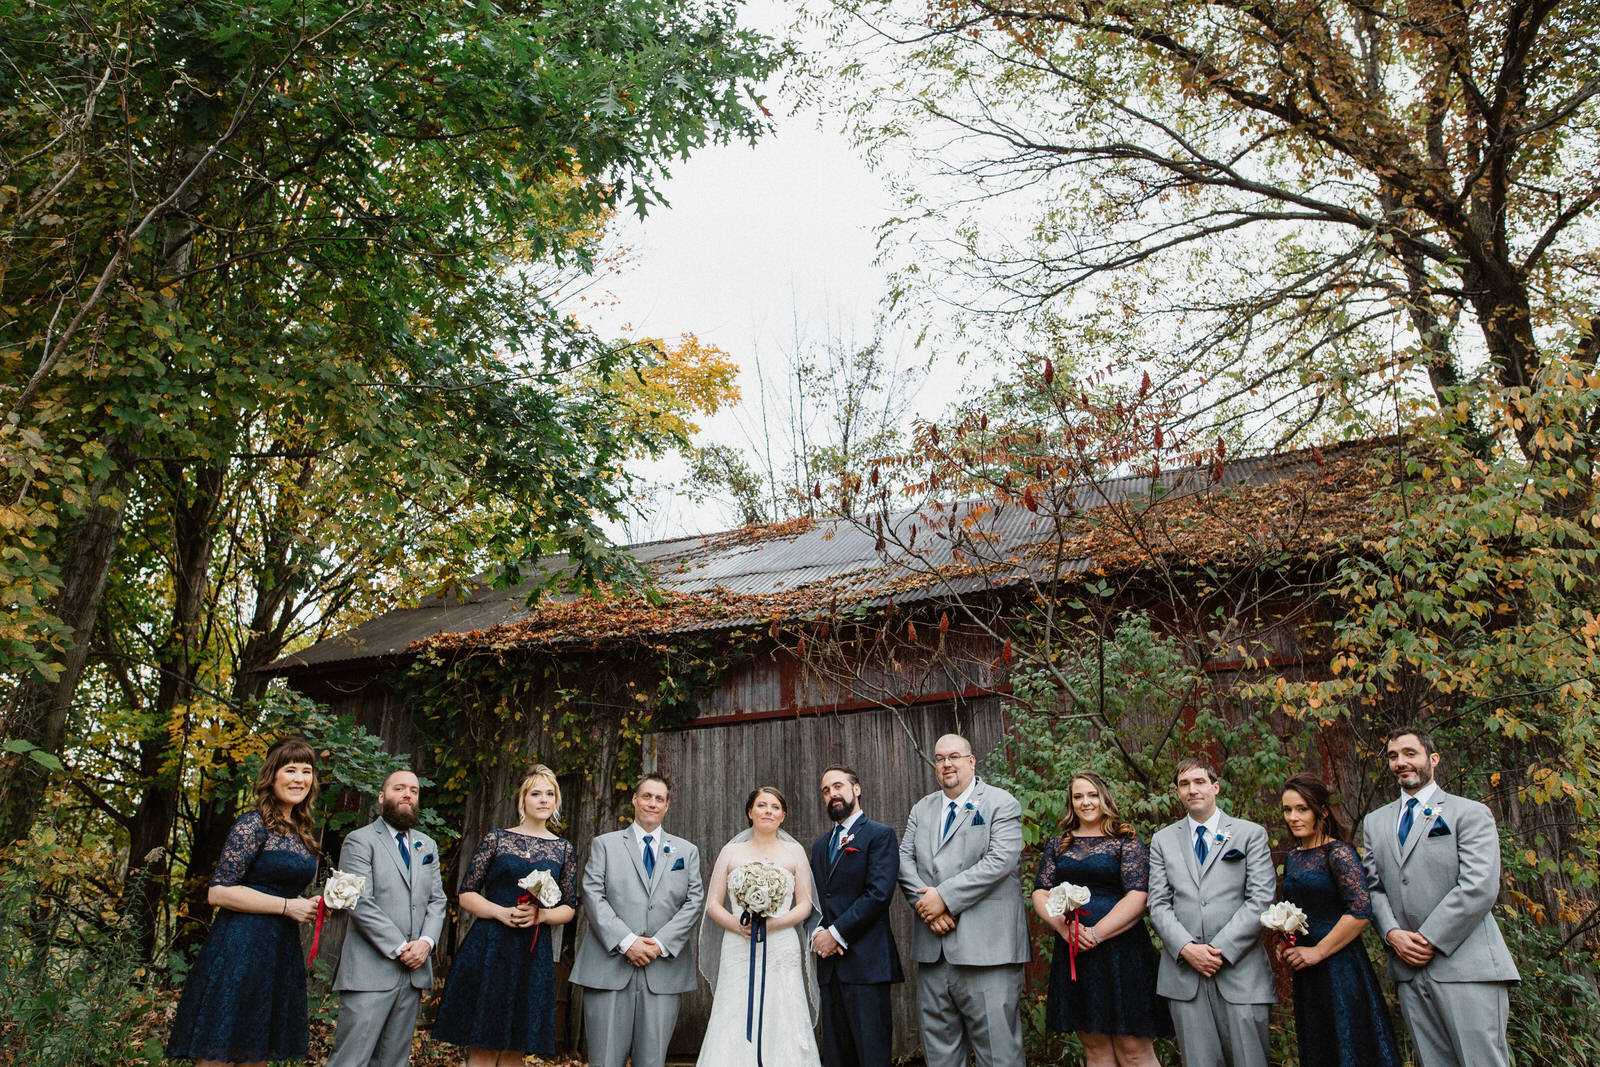 Portland Seattle Destination Wedding Photographer Michigan Millcreek Wilde Barn0063.JPG